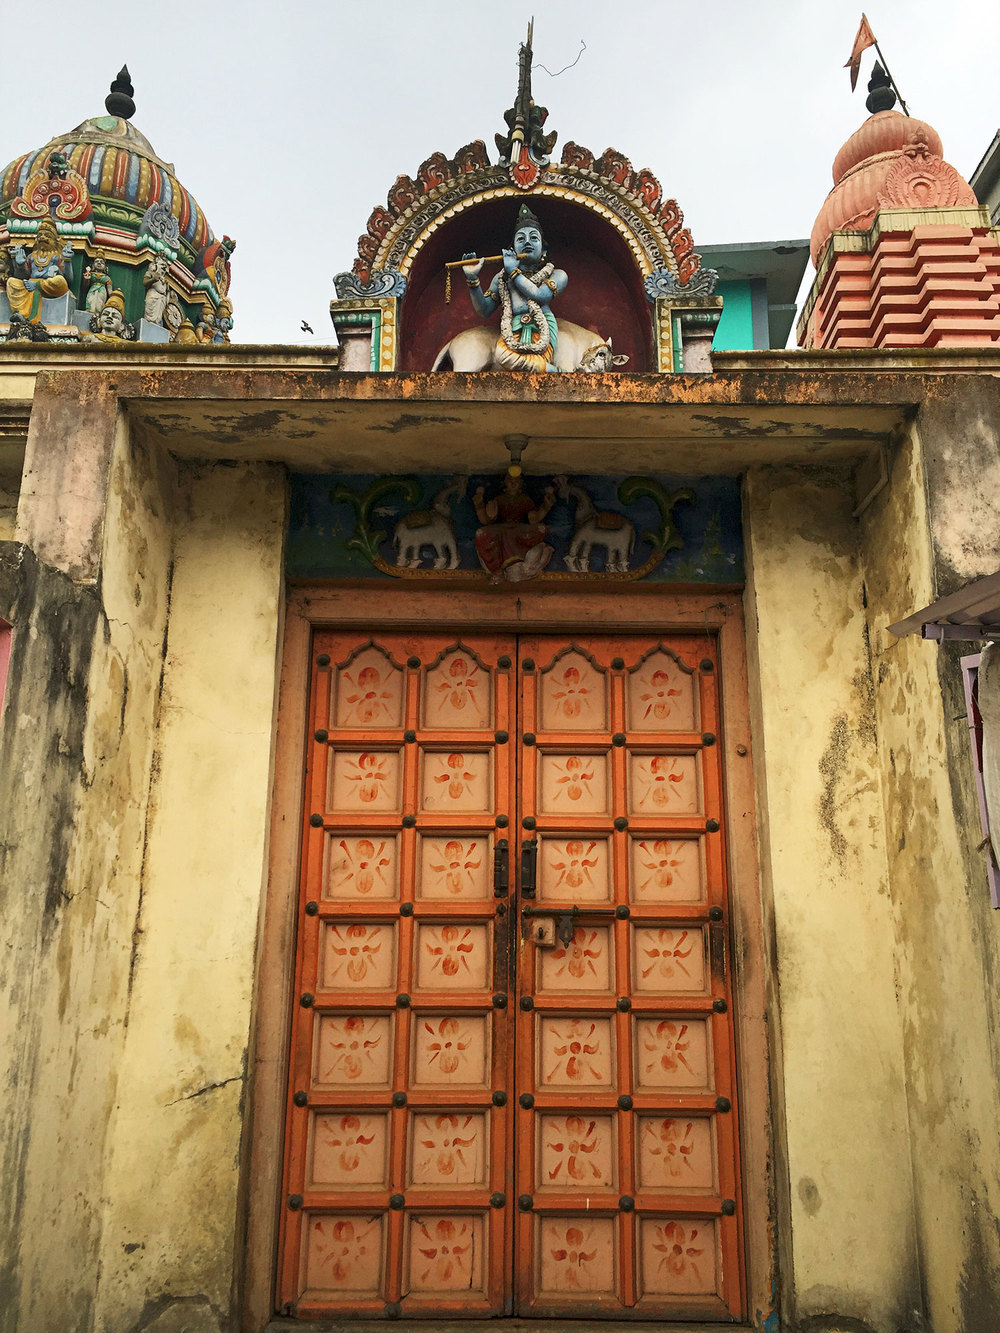 Entrance to a small Krishna temple in Ooty.